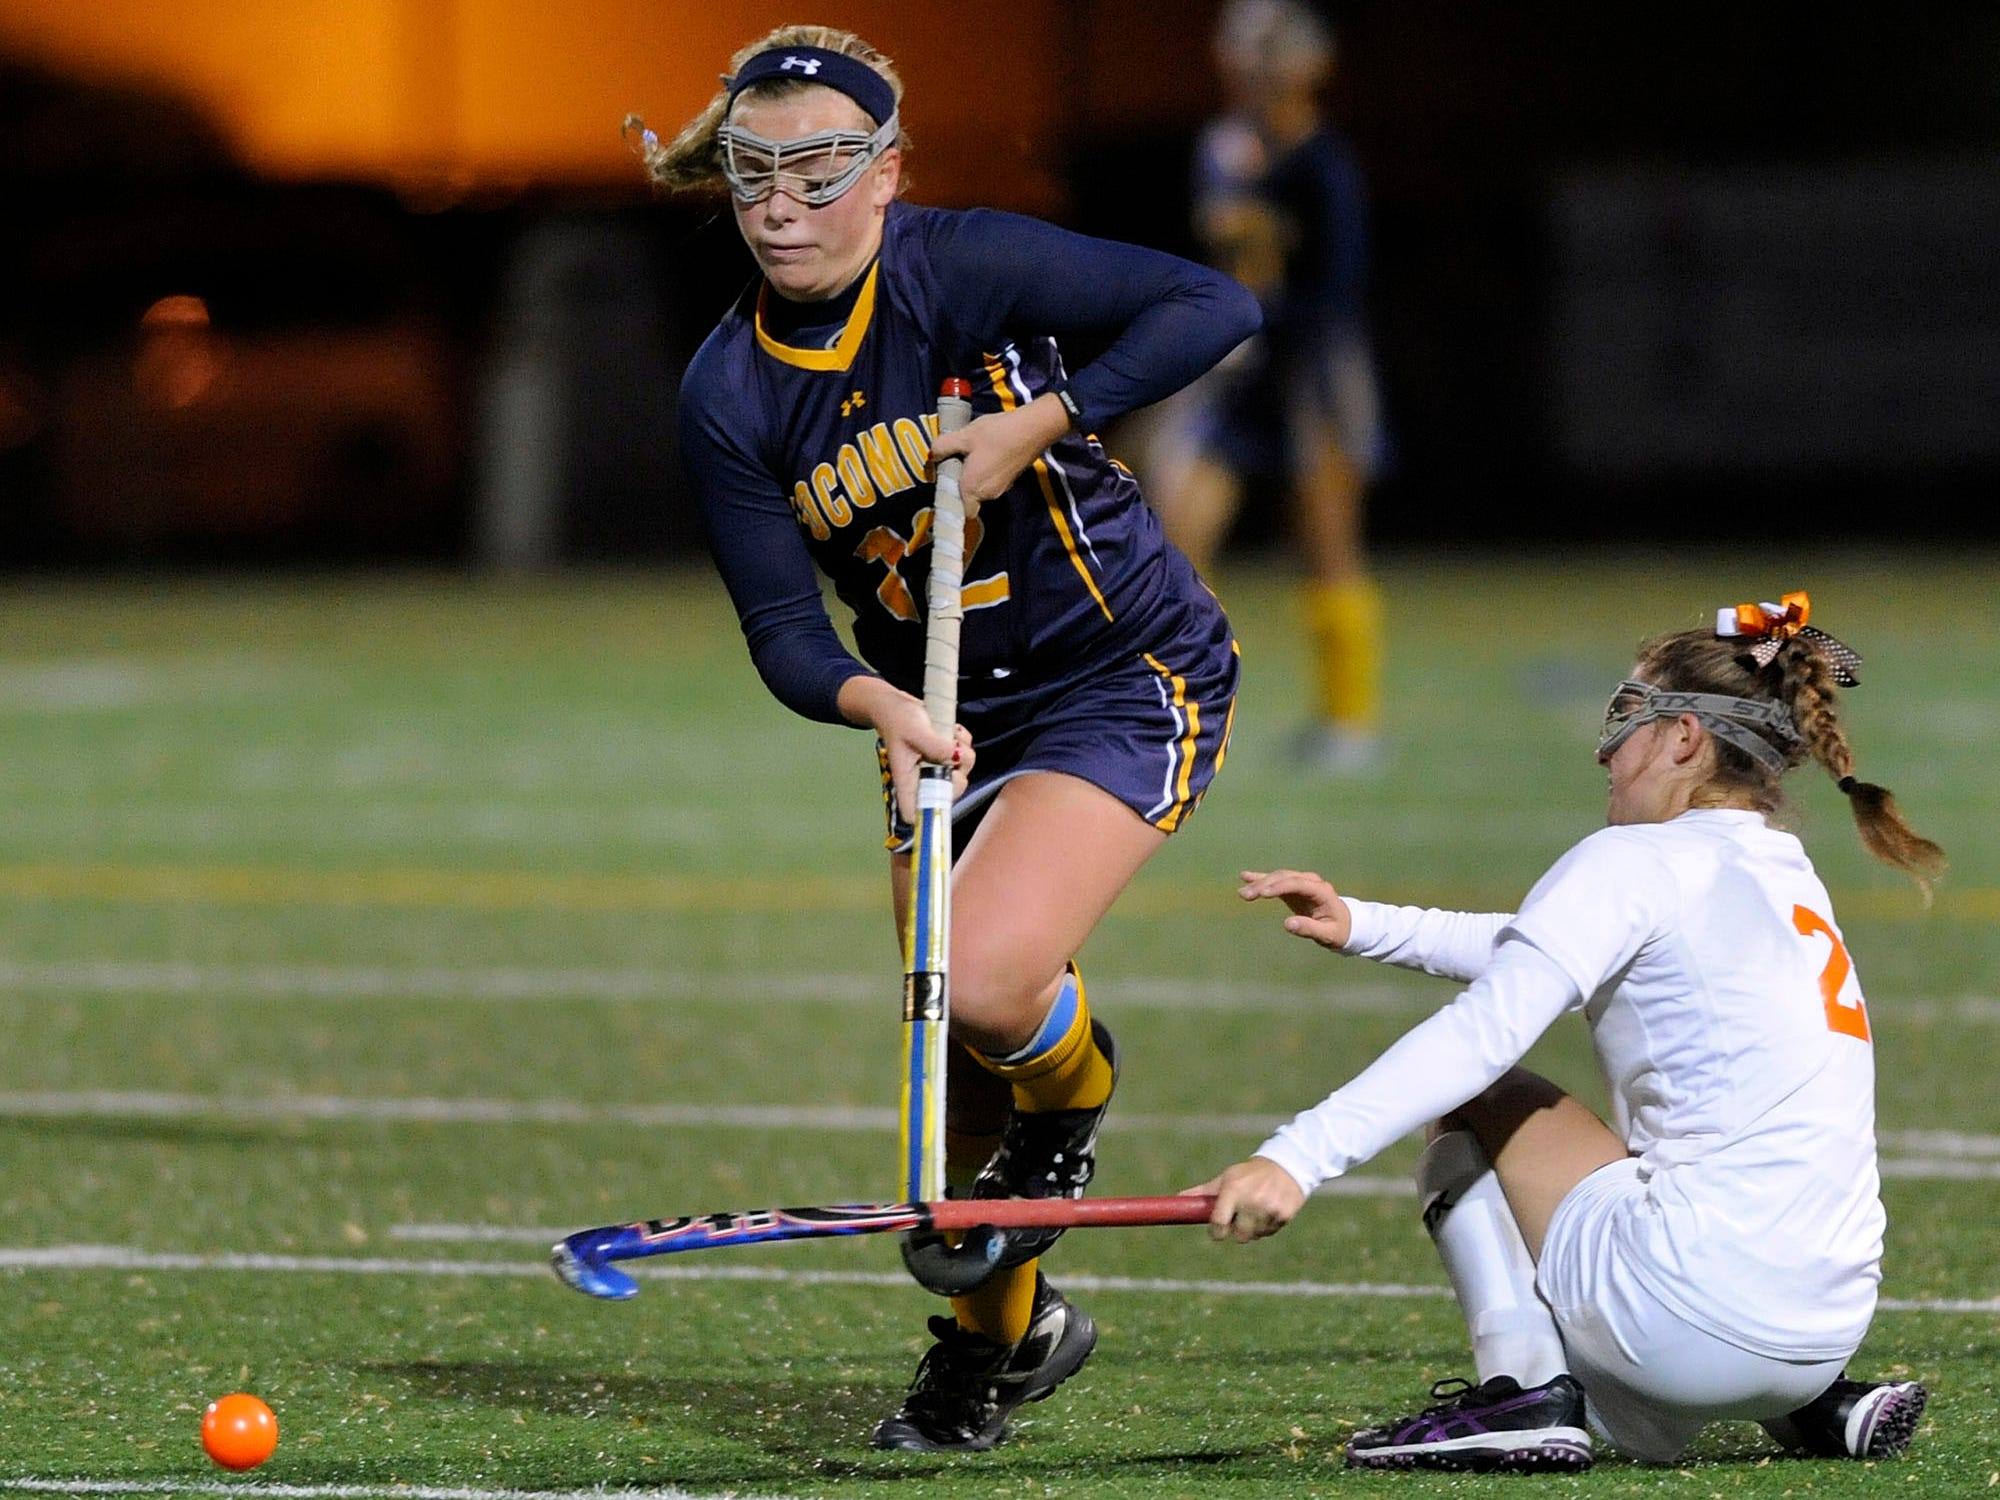 Pocomoke's Lexi Butler, left, moves past Fallston's Kylie Ryan in the second half of a state semifinal field hockey game Monday, Nov. 3, 2014 in Annapolis. (Photo by Steve Ruark for The Daily Times)